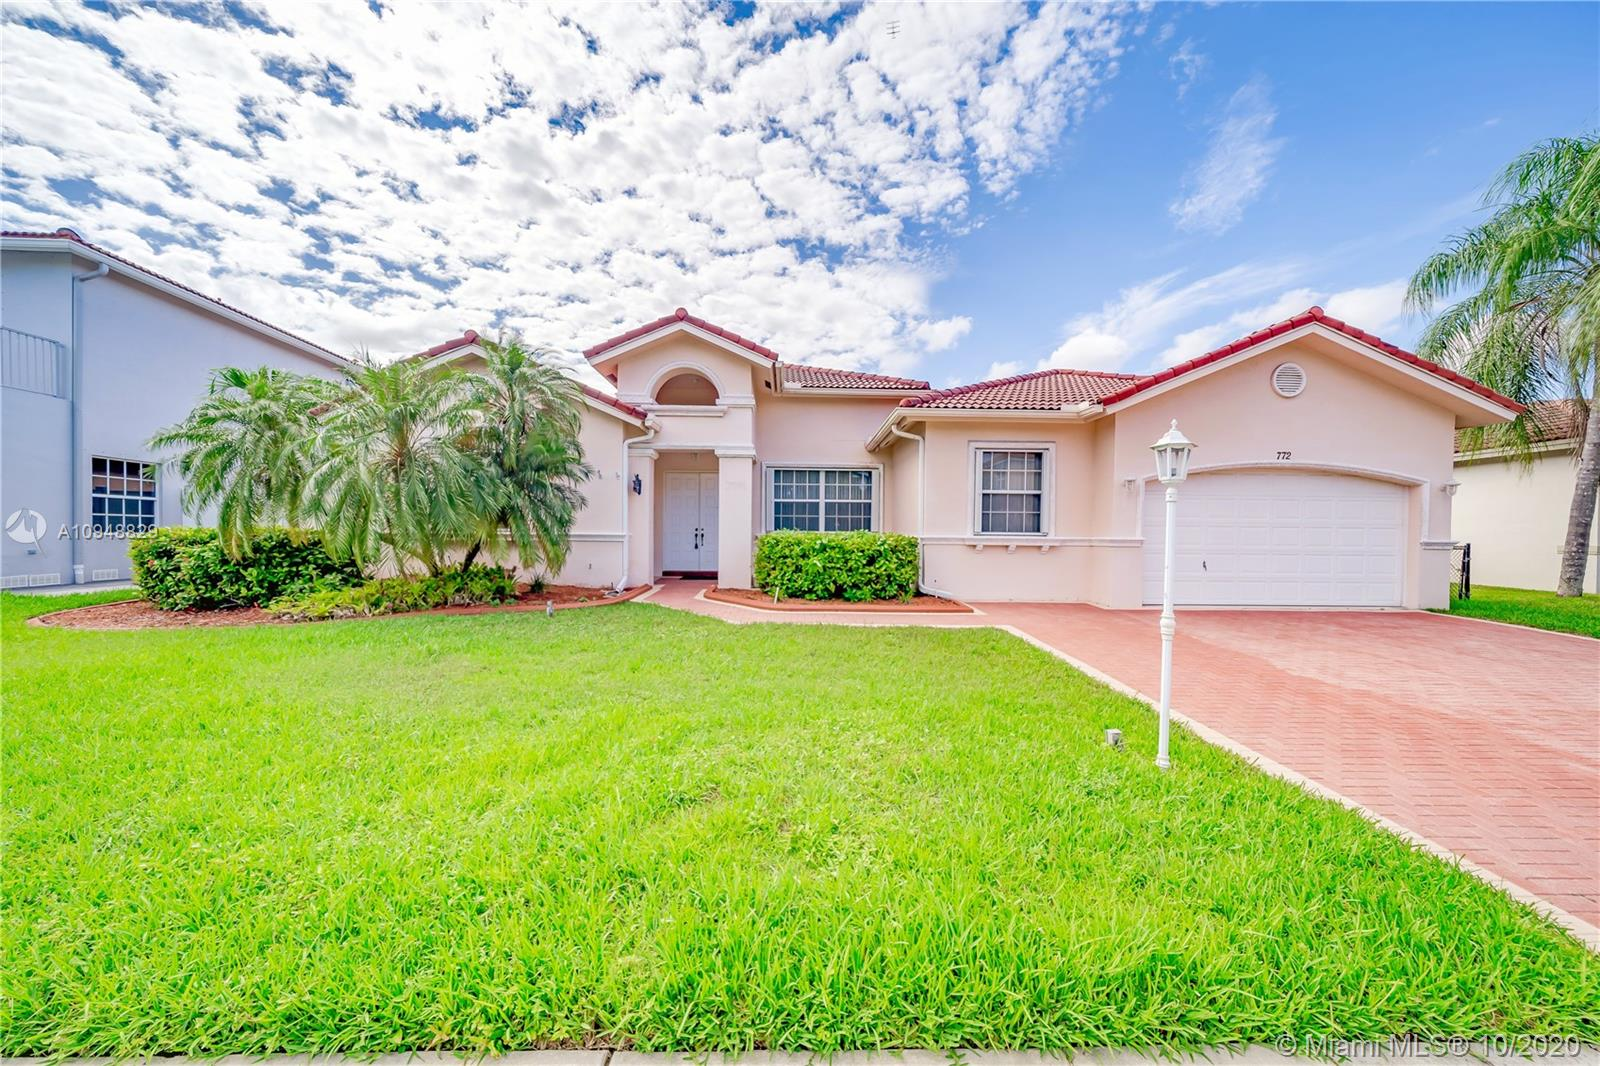 772 SW 159th Dr – Pembroke Pines